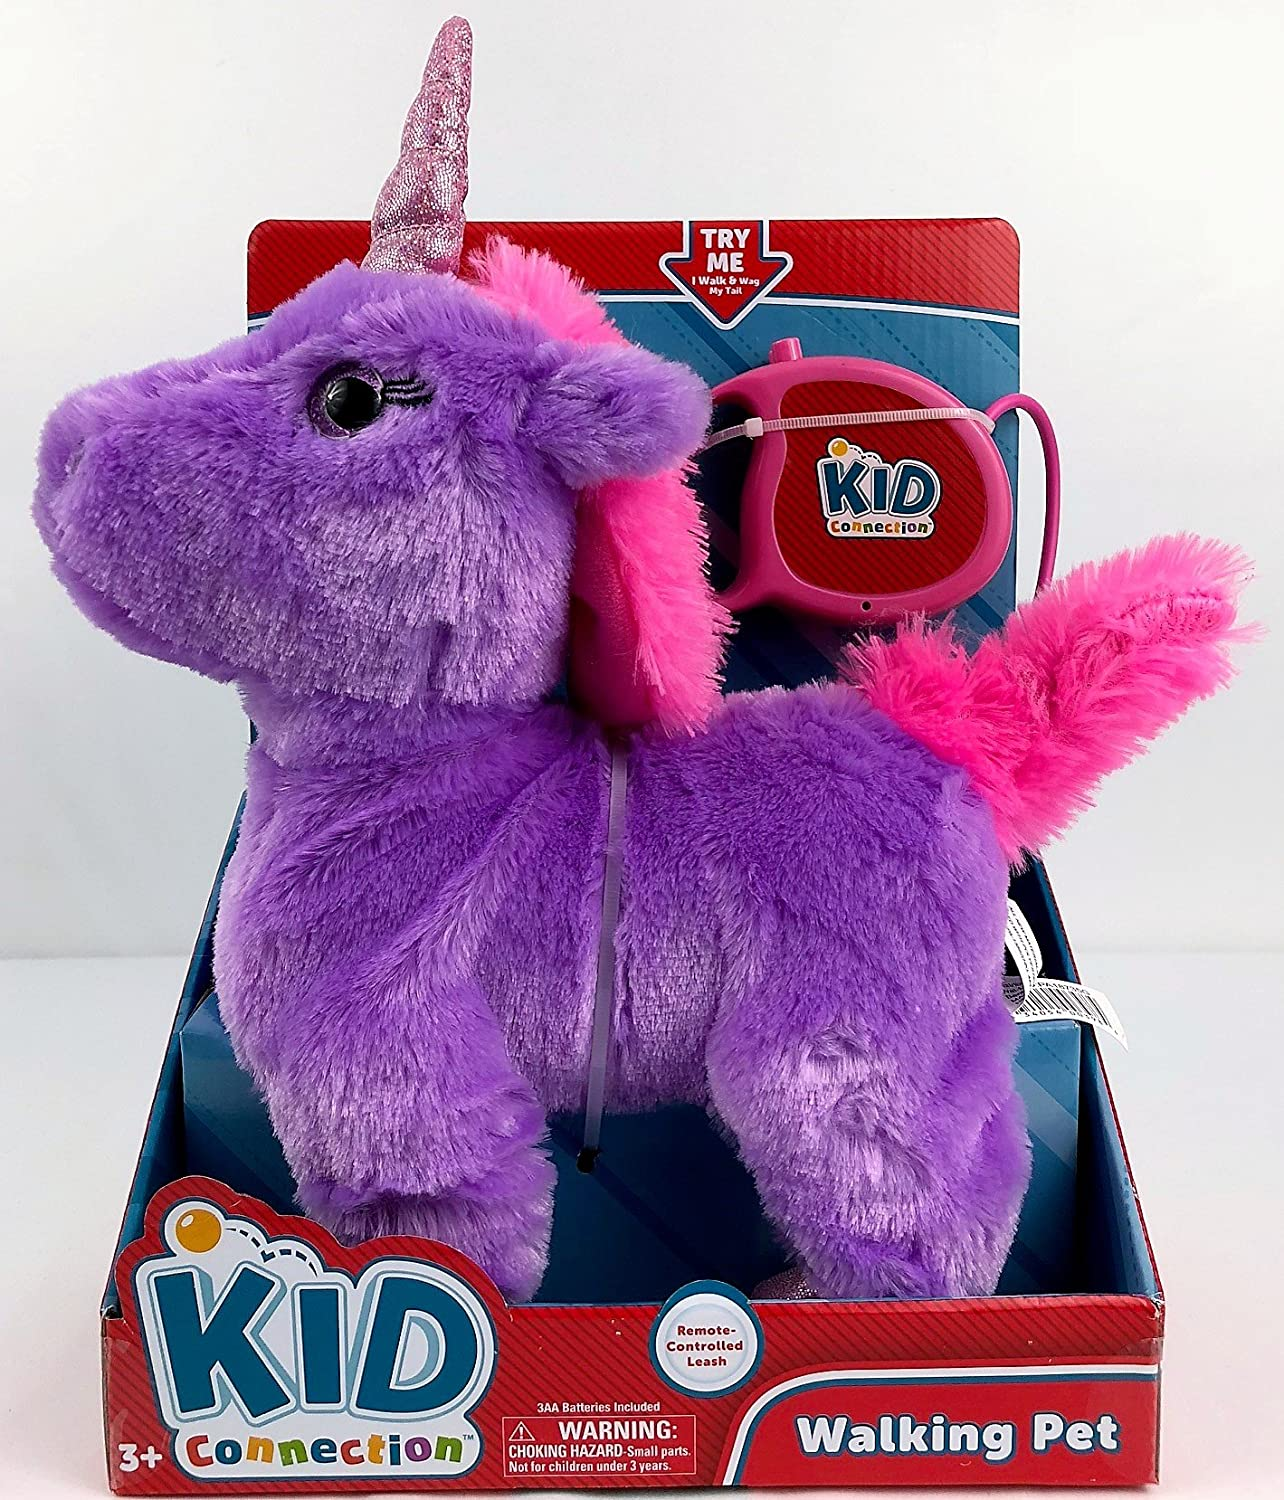 Kid Connection walking pet Unicorn